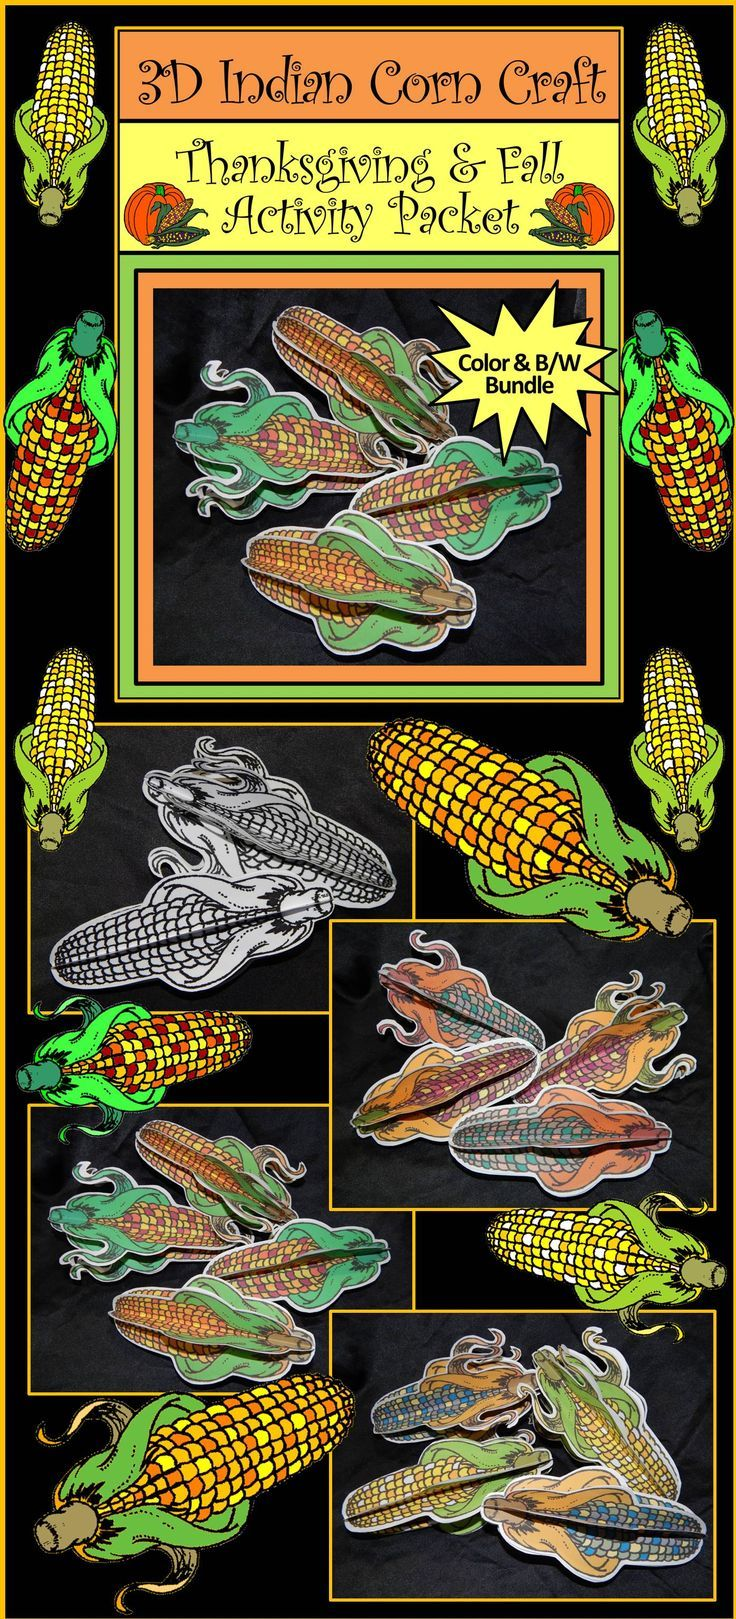 Classroom window decoration  Thanksgiving Crafts D Indian Corn Fall Activity Packet Bundle